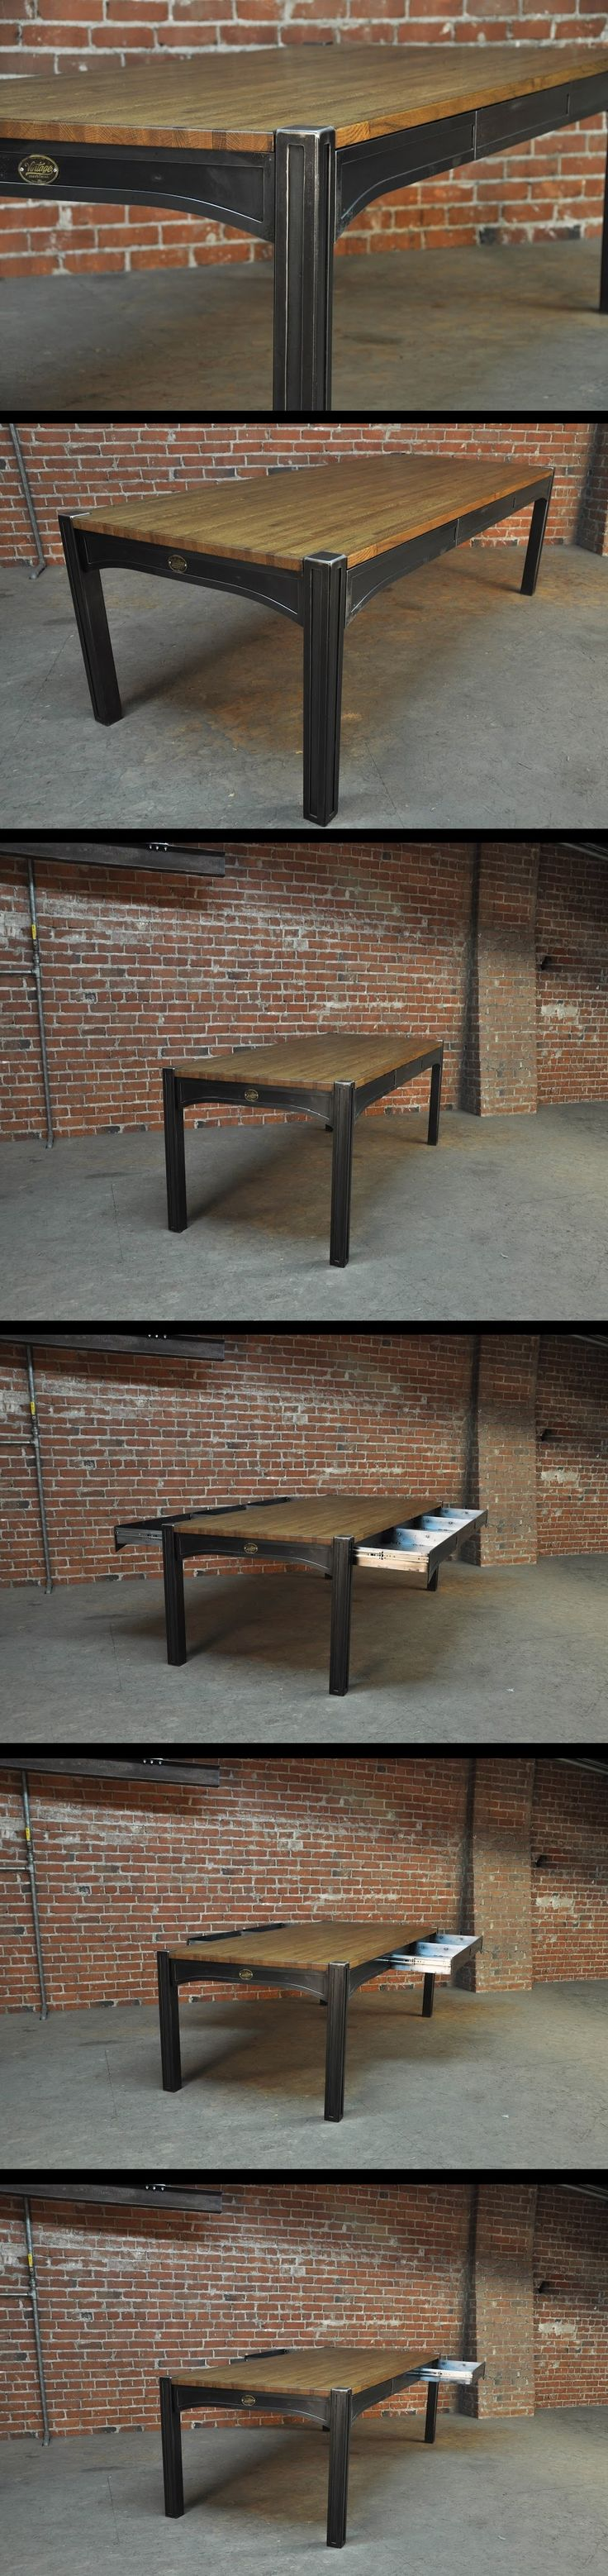 42 Dining Table by Vintage Industrial Furniture in Phoenix, AZ